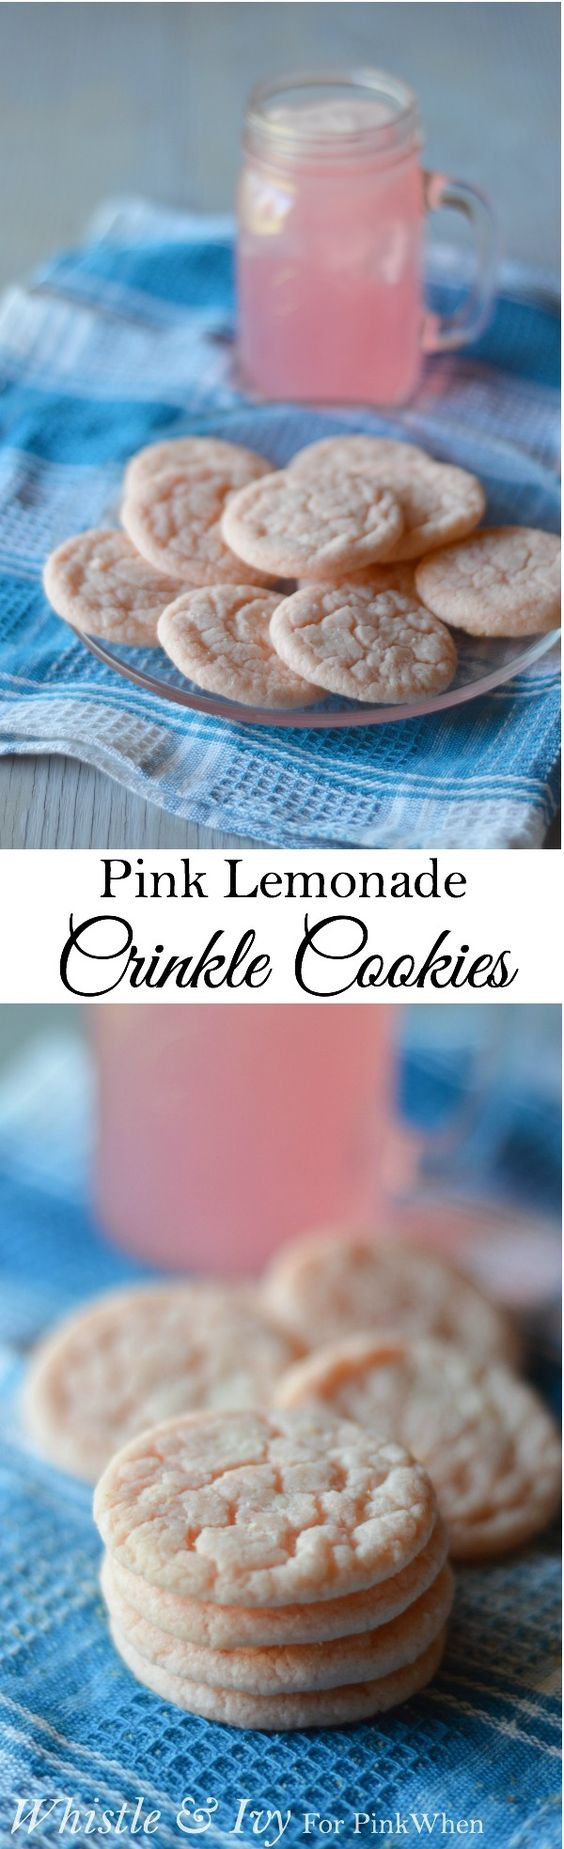 Pink Lemonade Crinkle Cookies - Perfect warm weather and backyard barbecue treat!: